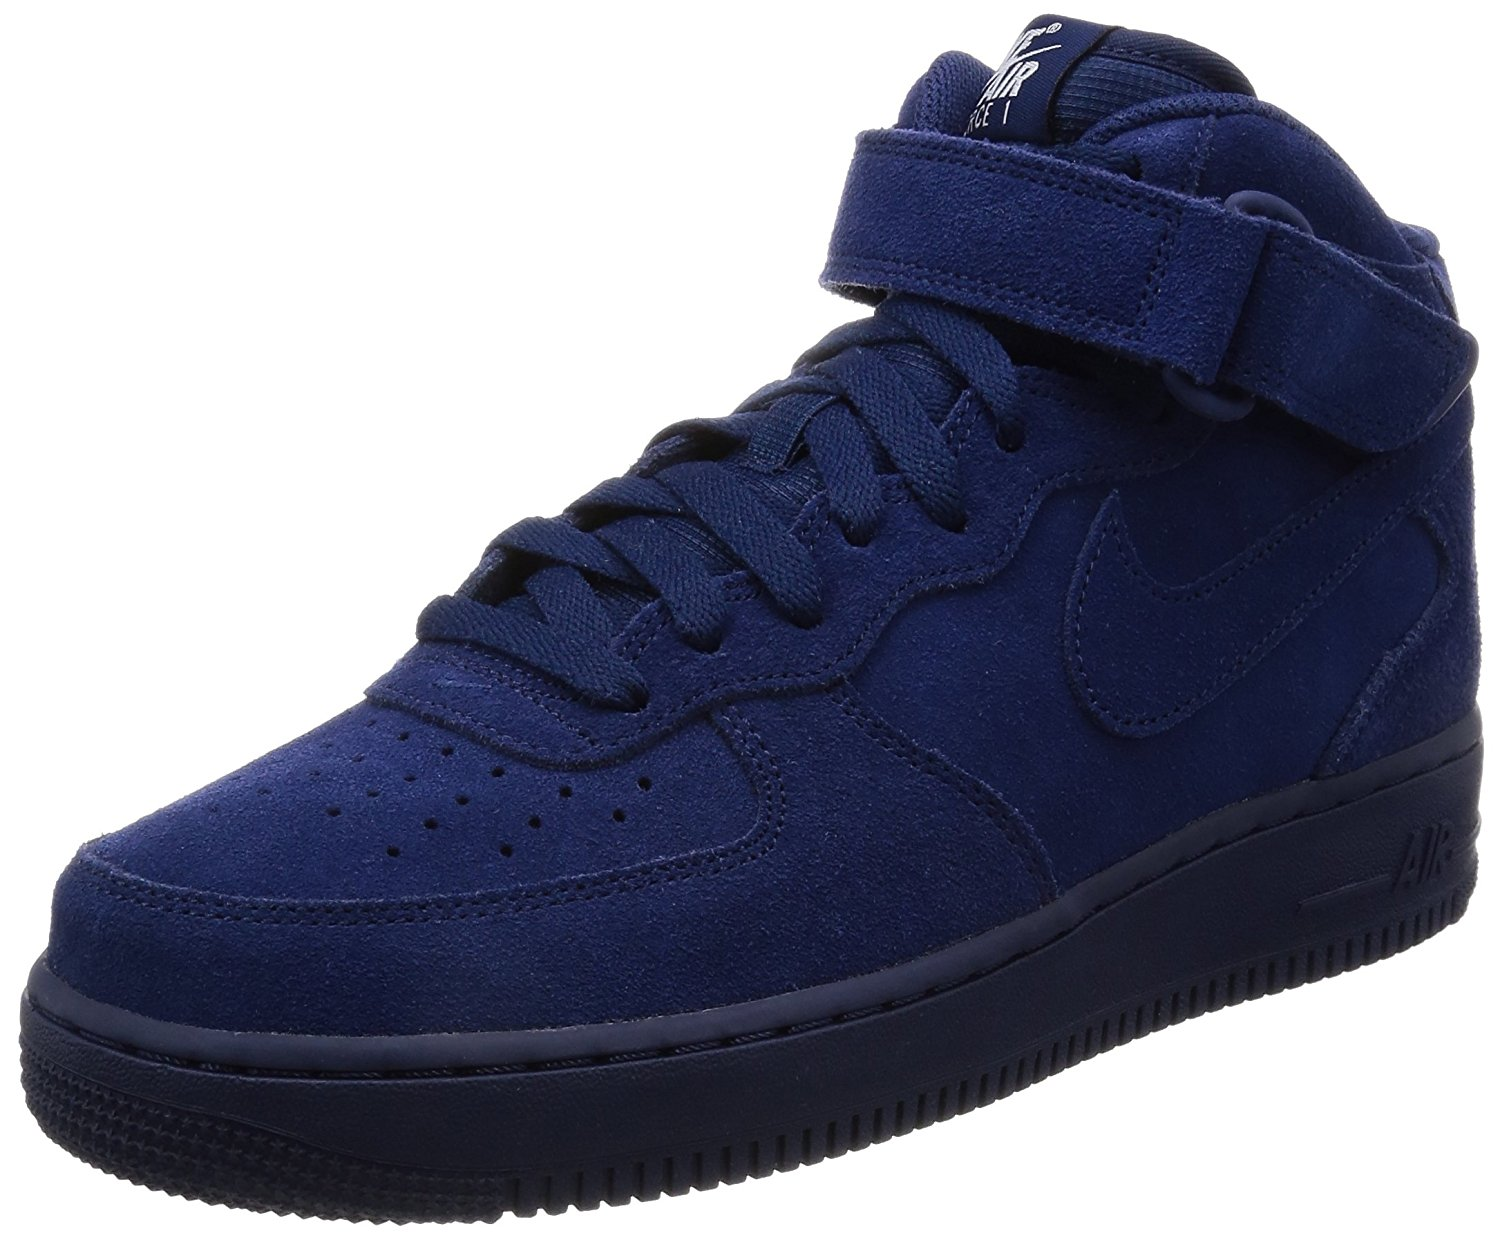 Cheap Nike Air Force 1 Mid 07, find Nike Air Force 1 Mid 07